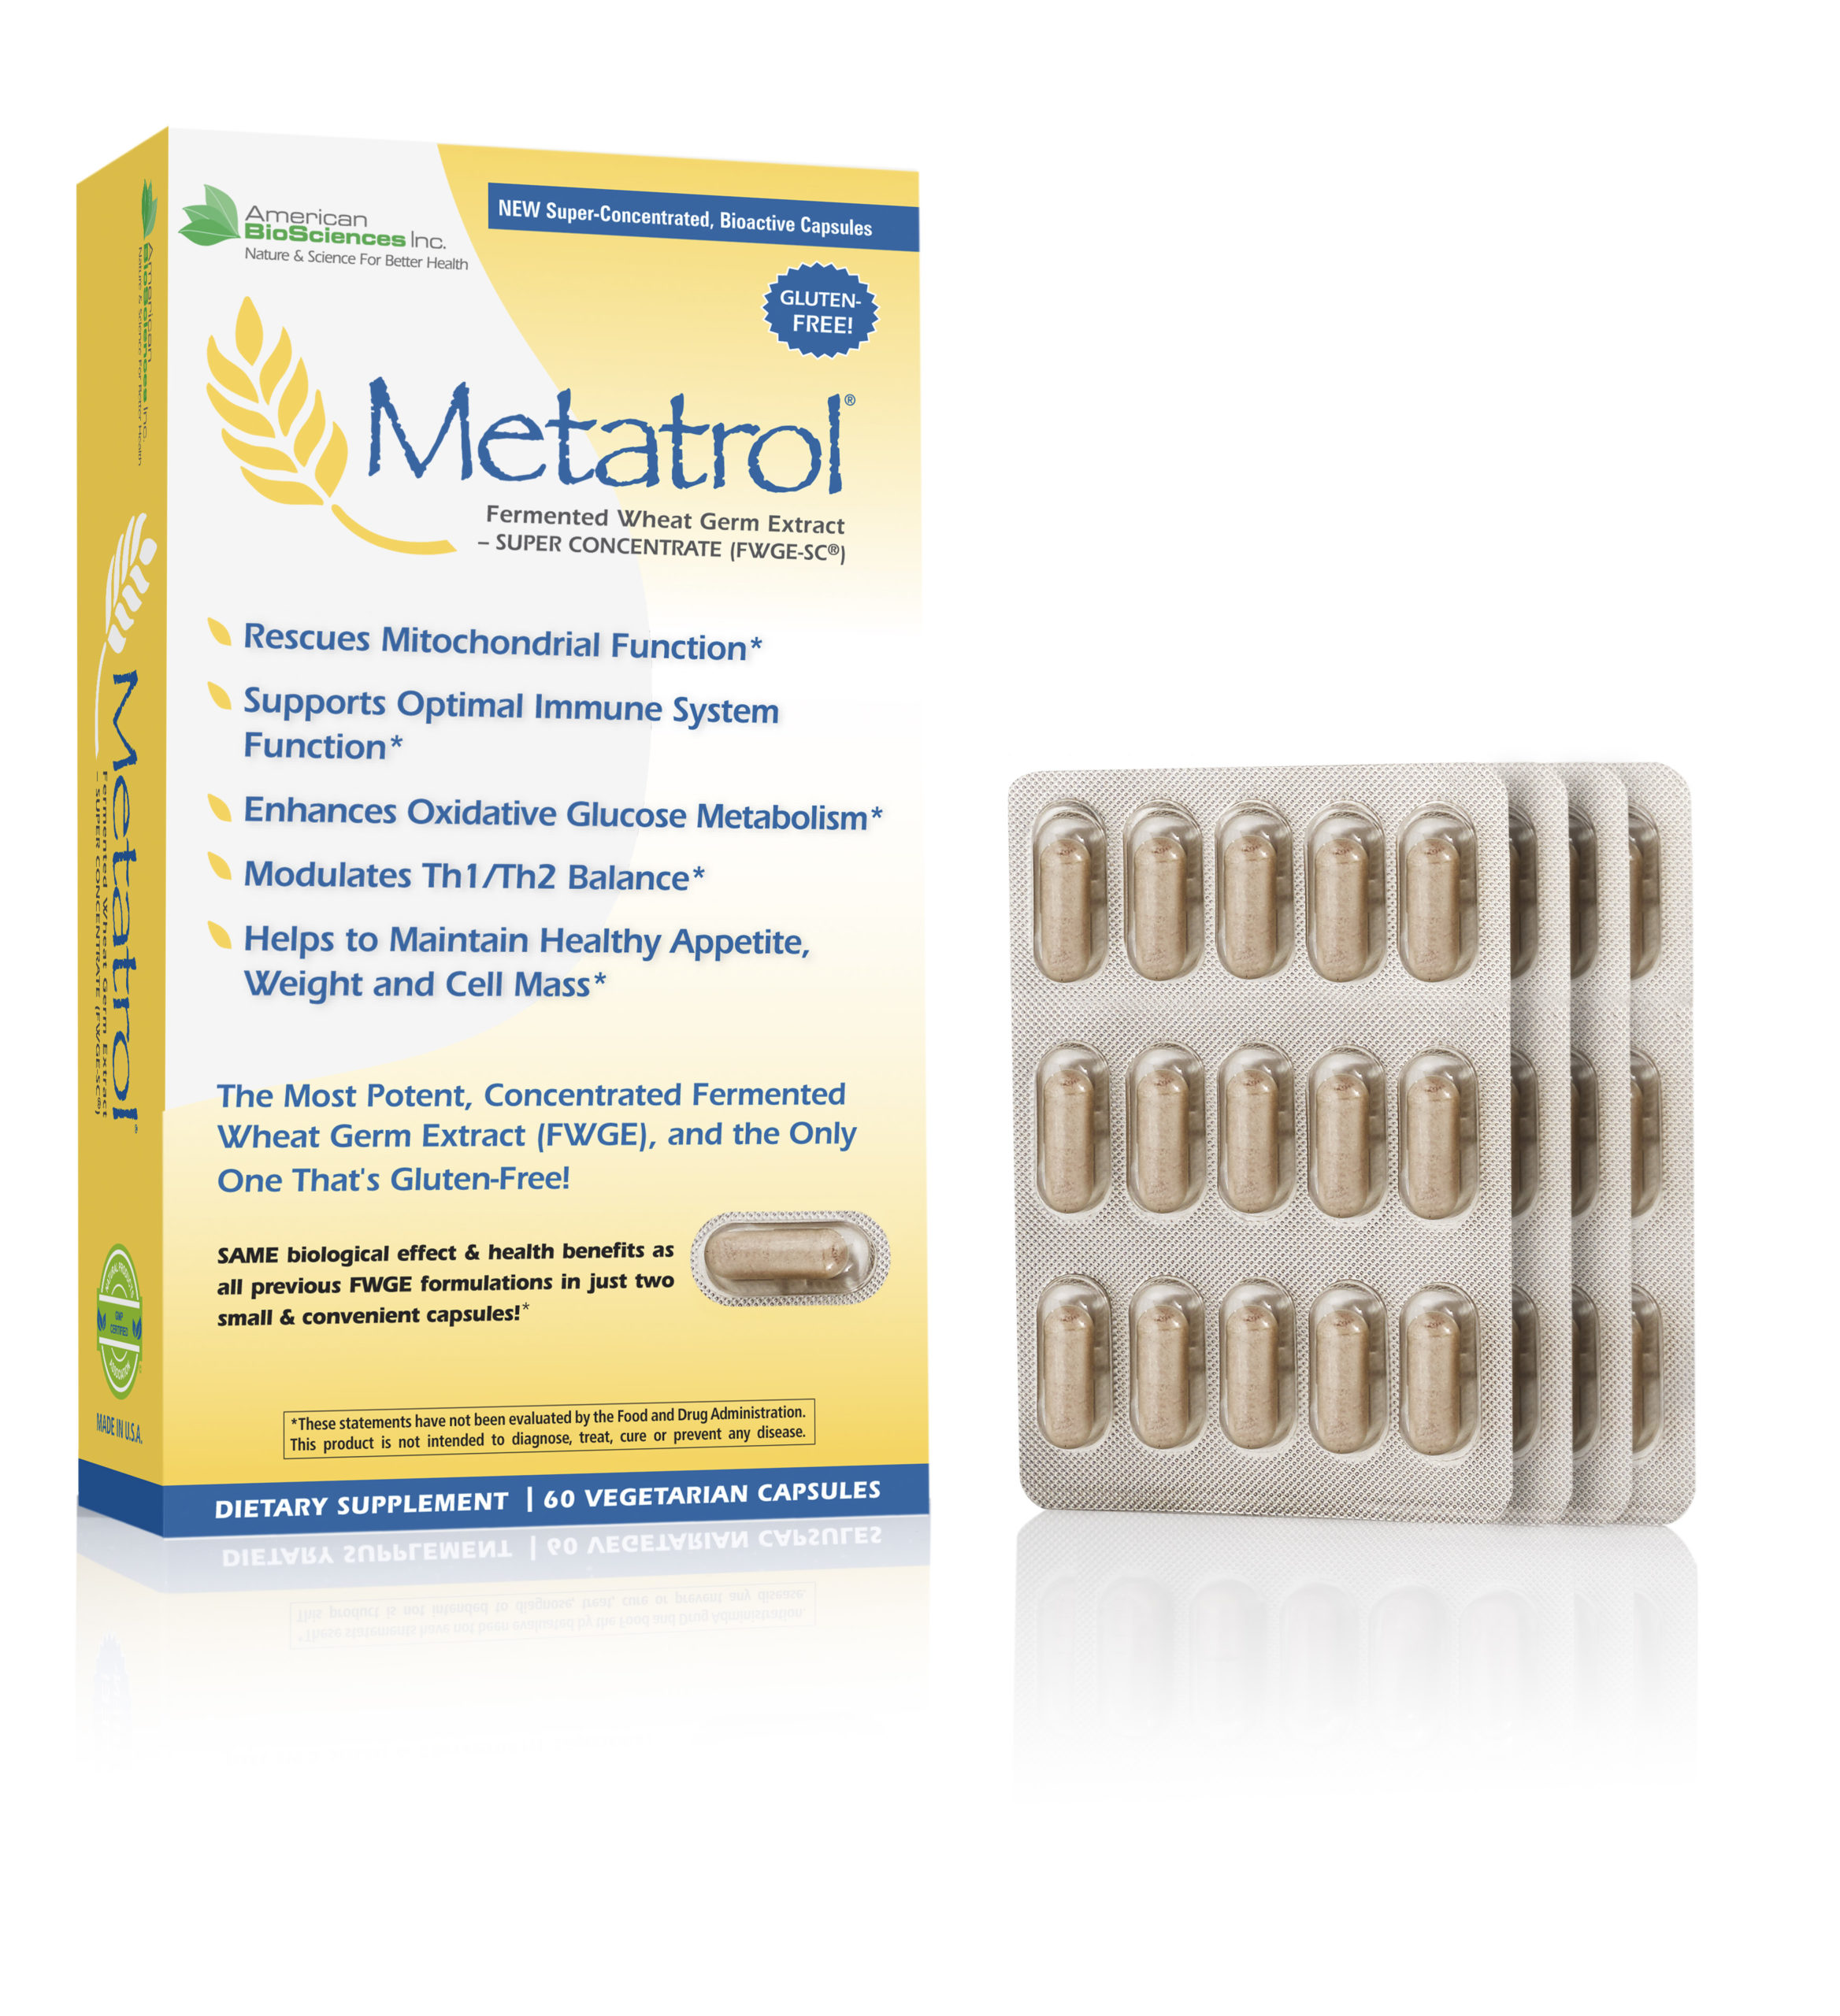 New Metatrol Box April 2018